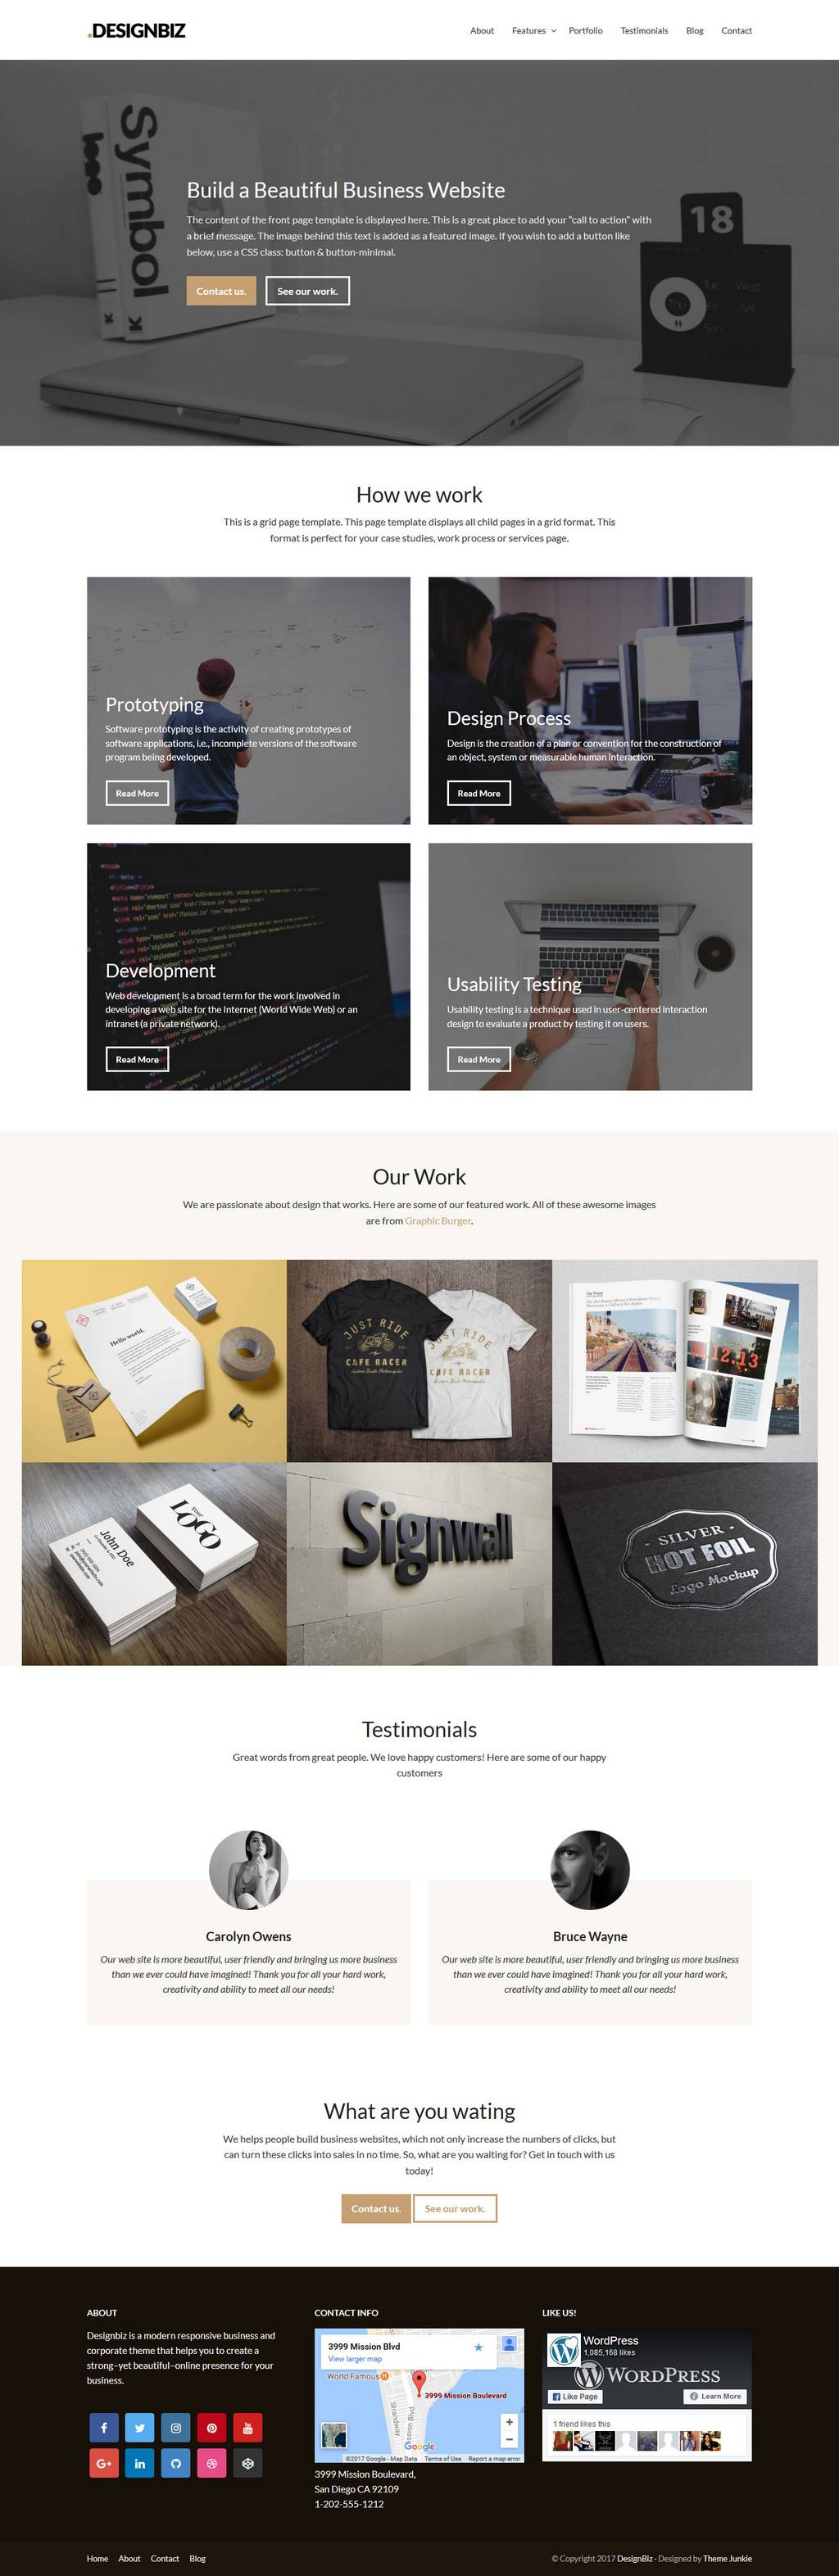 designbiz theme junkie wordpress theme 01 - designbiz-theme-junkie-wordpress-theme-01